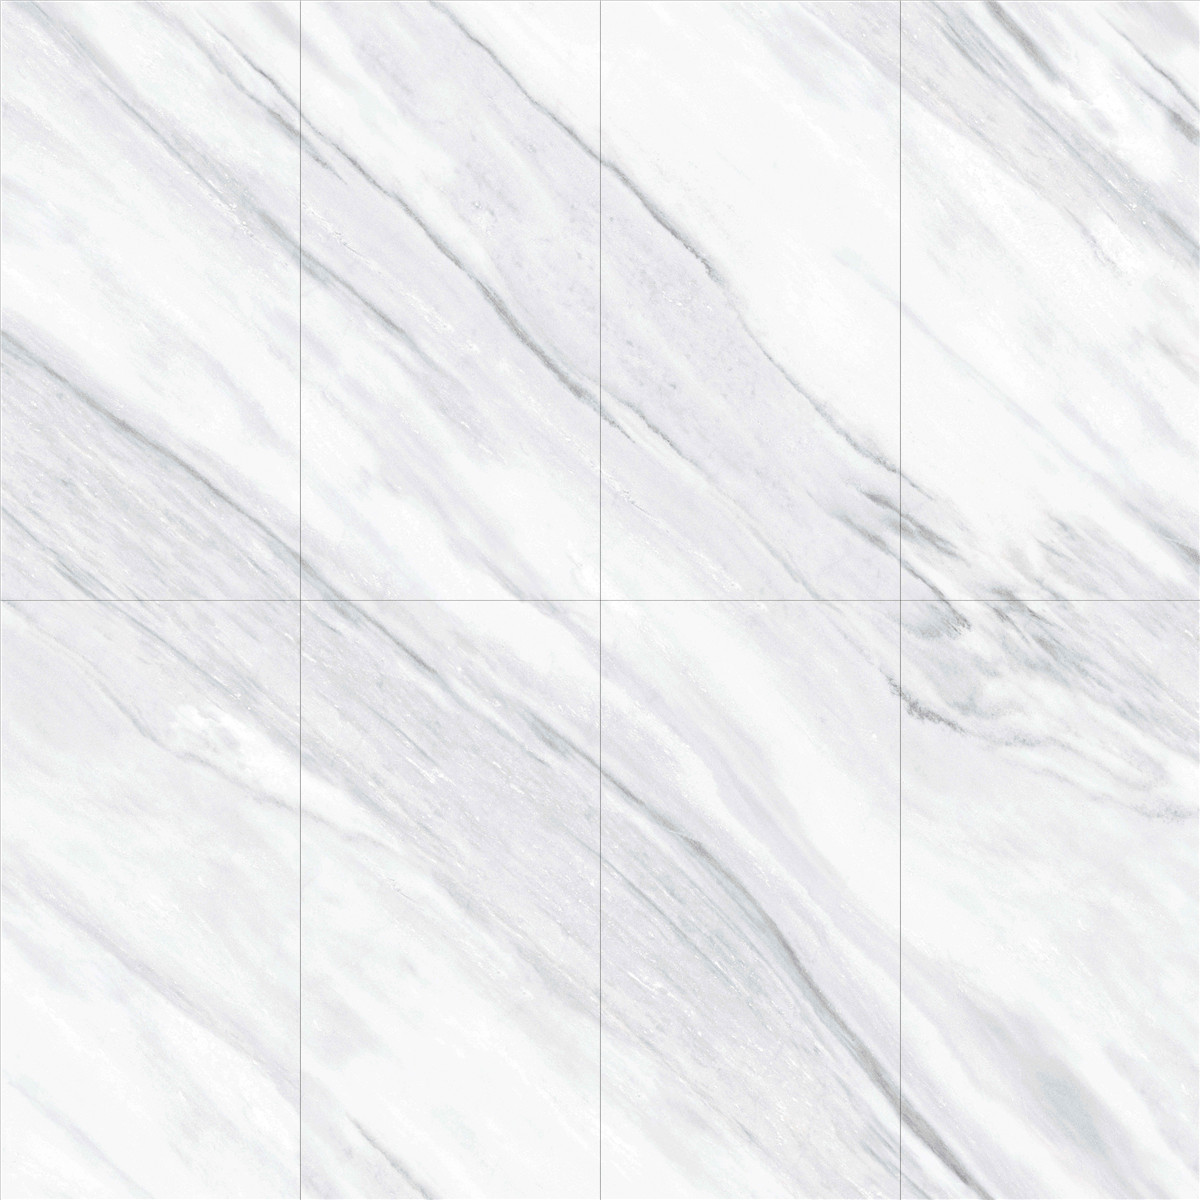 acid and alkali resistance Marble Tiles